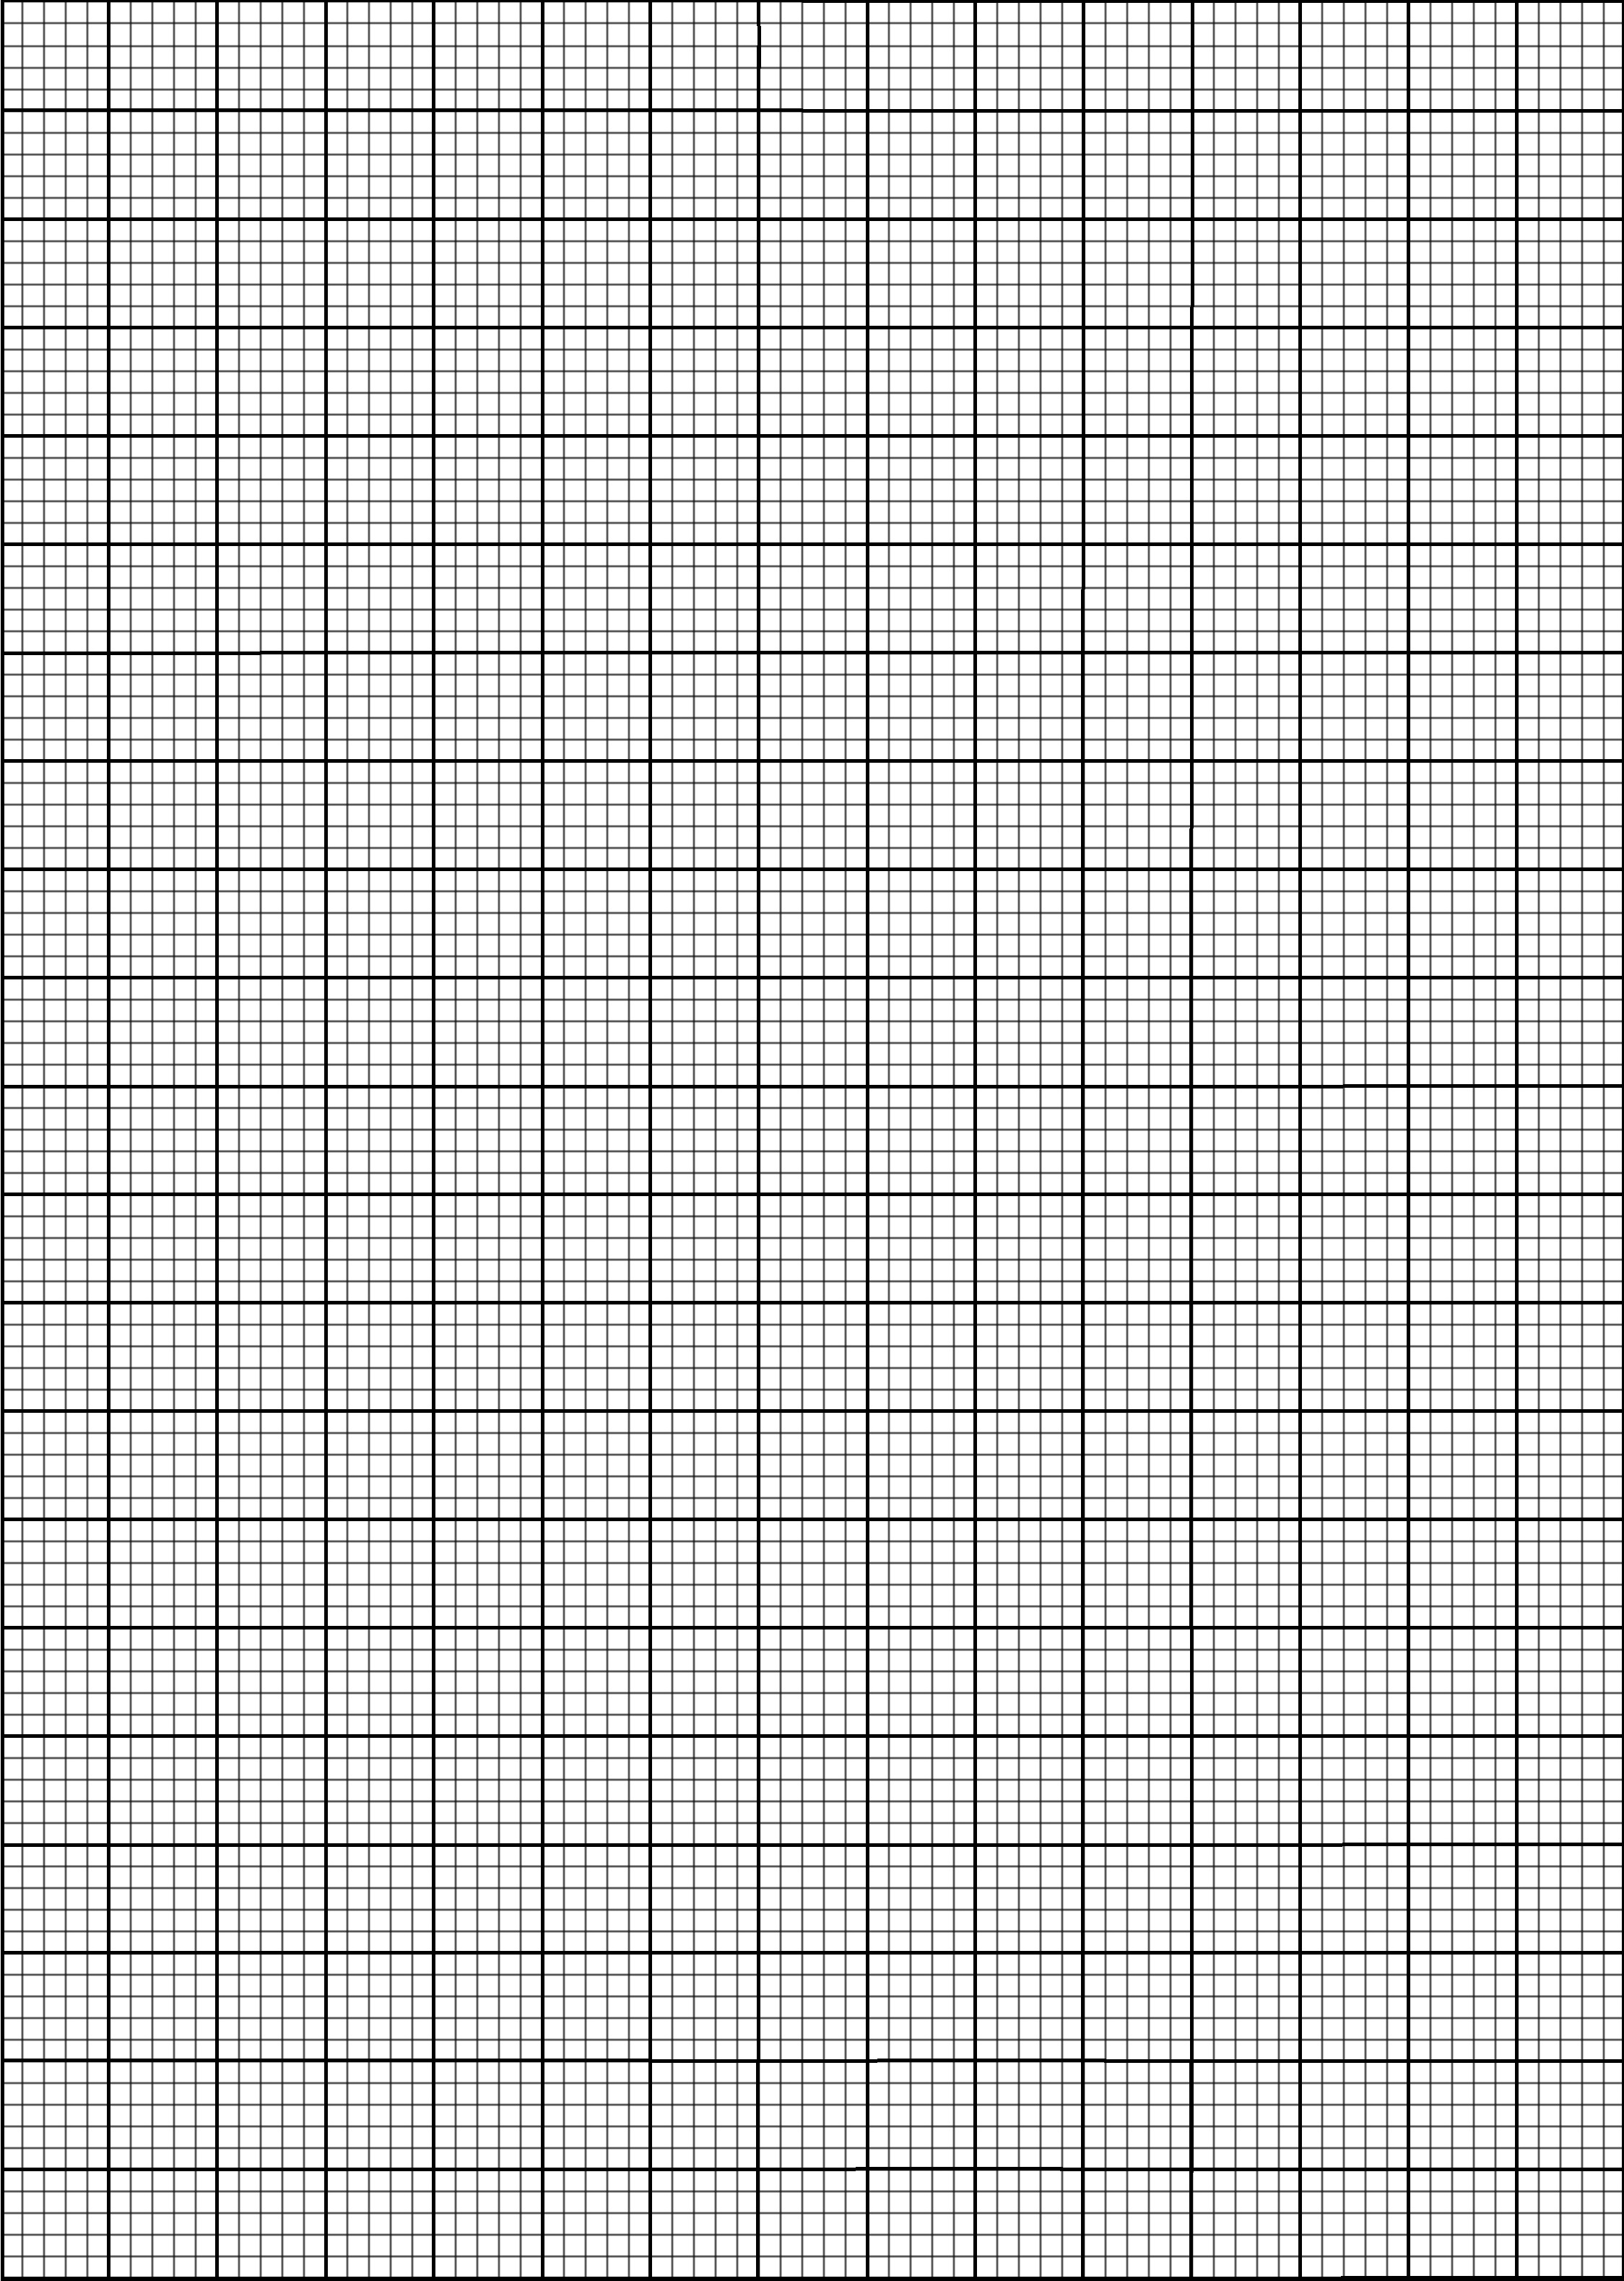 9x9 graph paper - Ecza.solinf.co